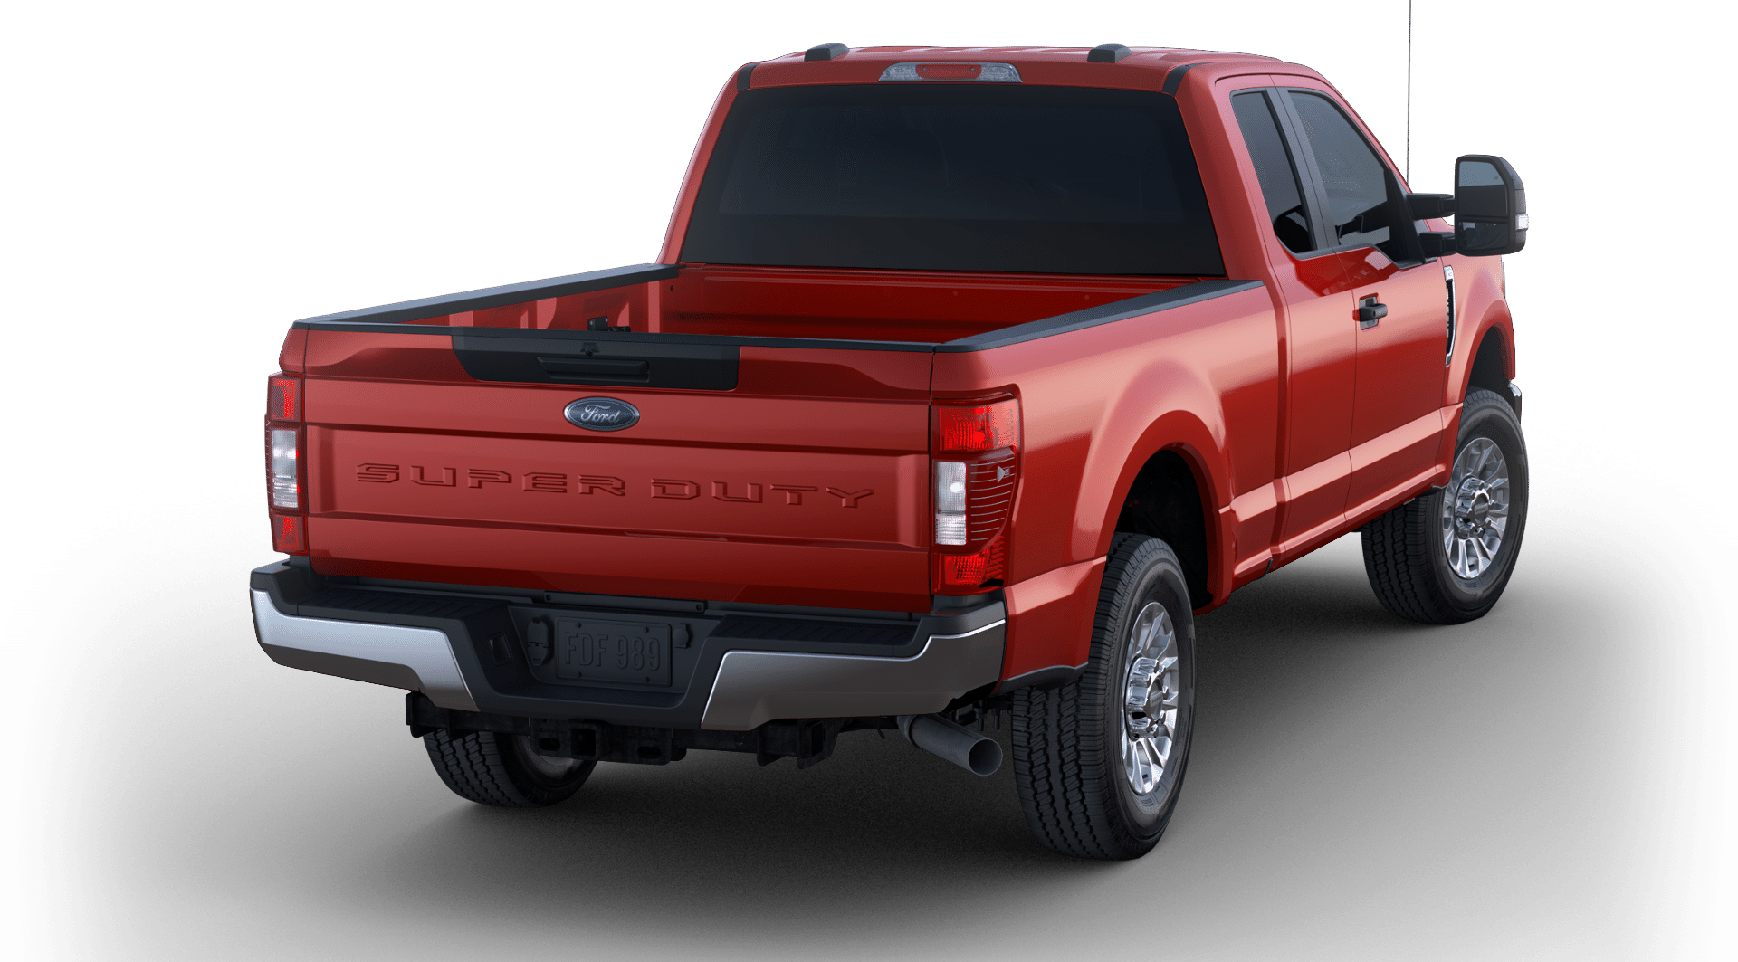 Ford F-250 2020 XLT 6.2 V8 SOHC FFV Бензин 6-ст. АКПП TorqShift® Heavy-Duty SelectShift-G™ Полный